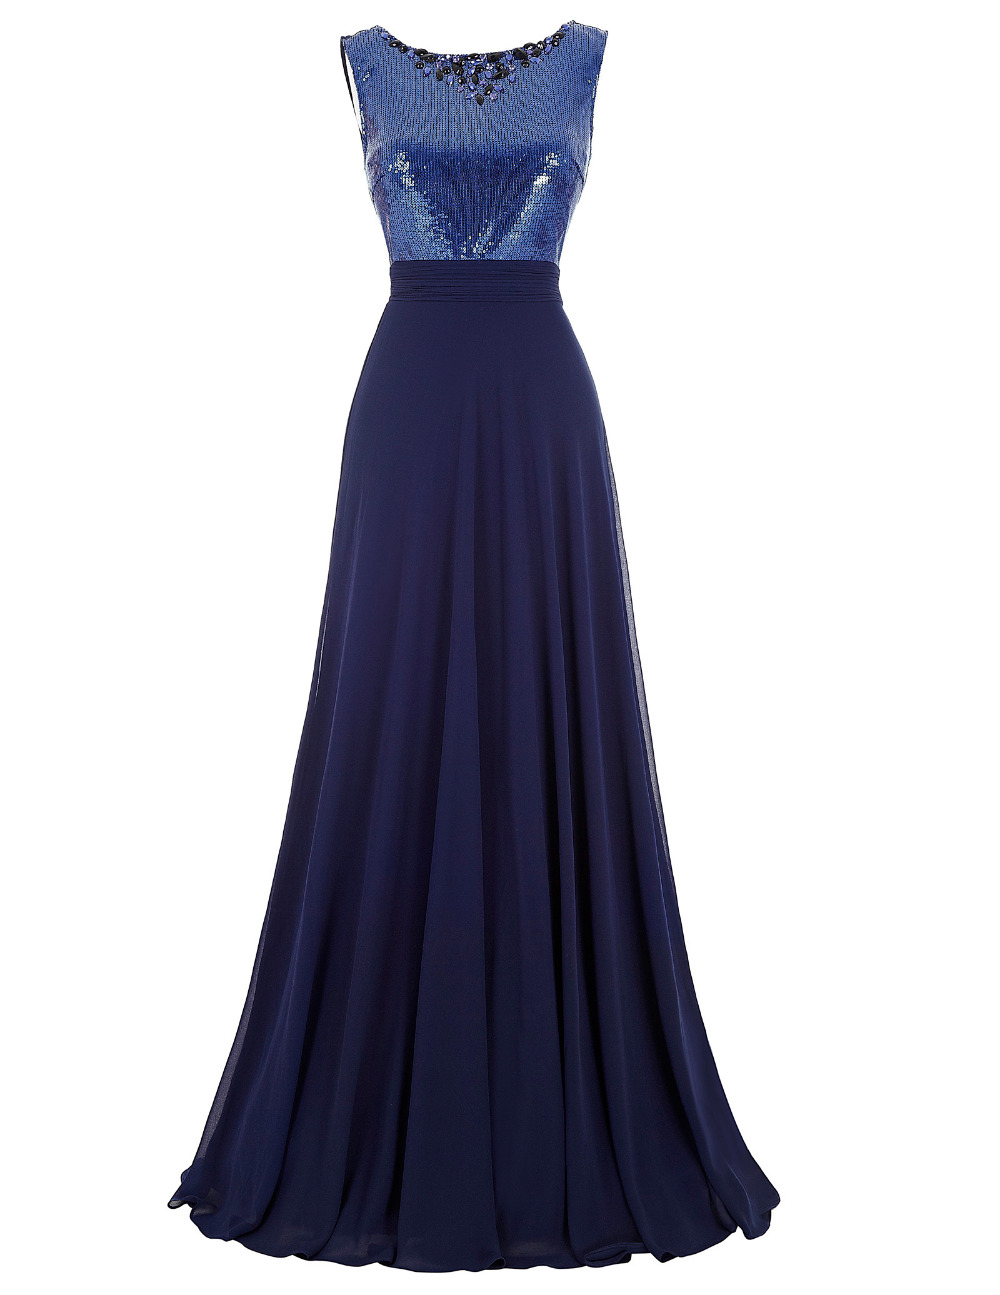 Western junior bridesmaid dresses long navy blue wedding for Navy blue dresses for wedding